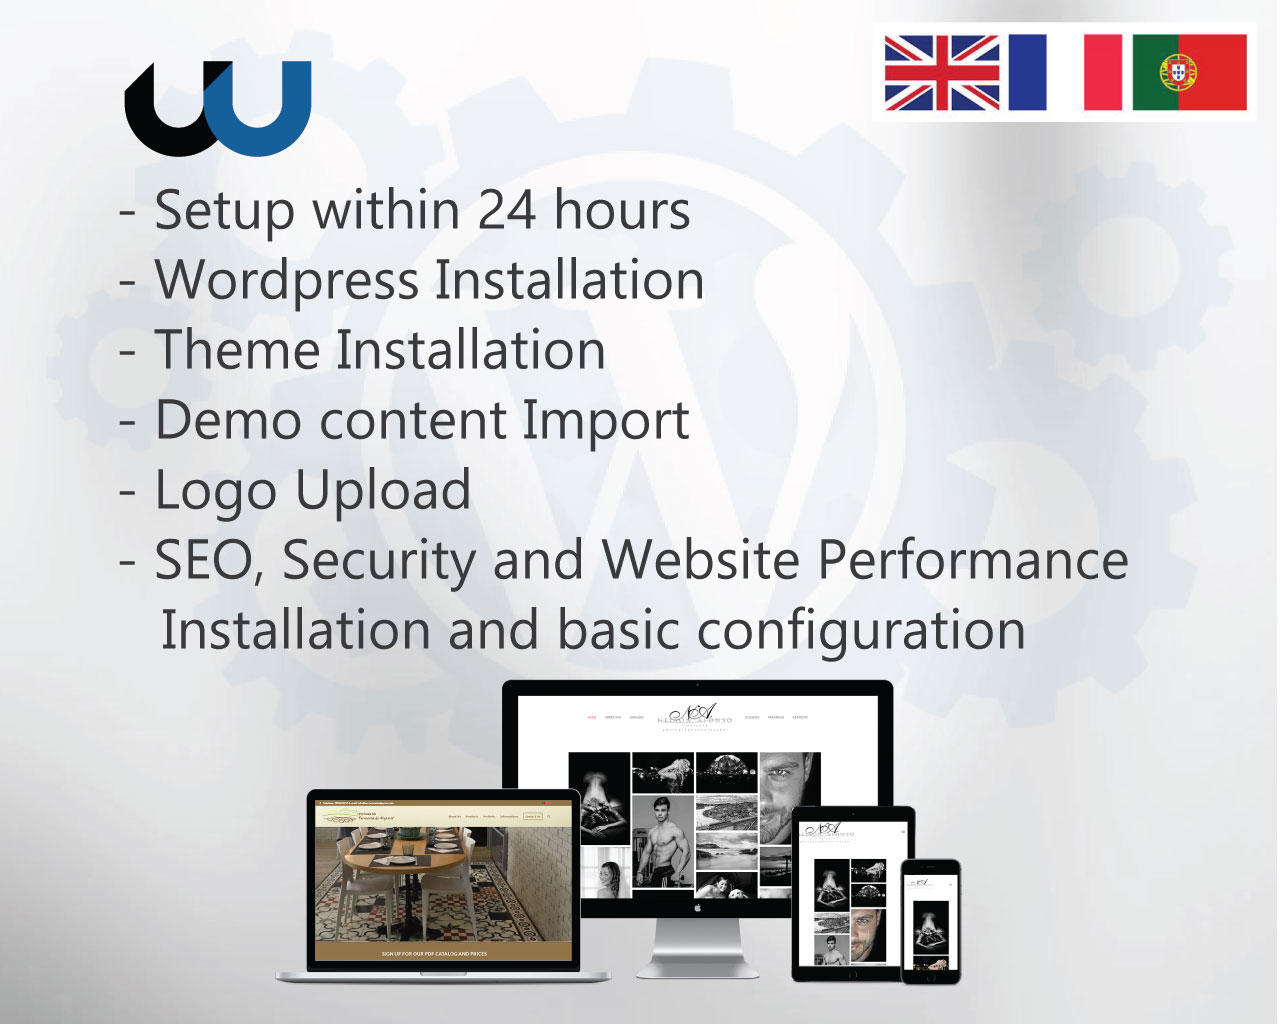 WP + Theme Setup + Demo + SEO, Security, Performance Plugins by johnnyborga - 108915